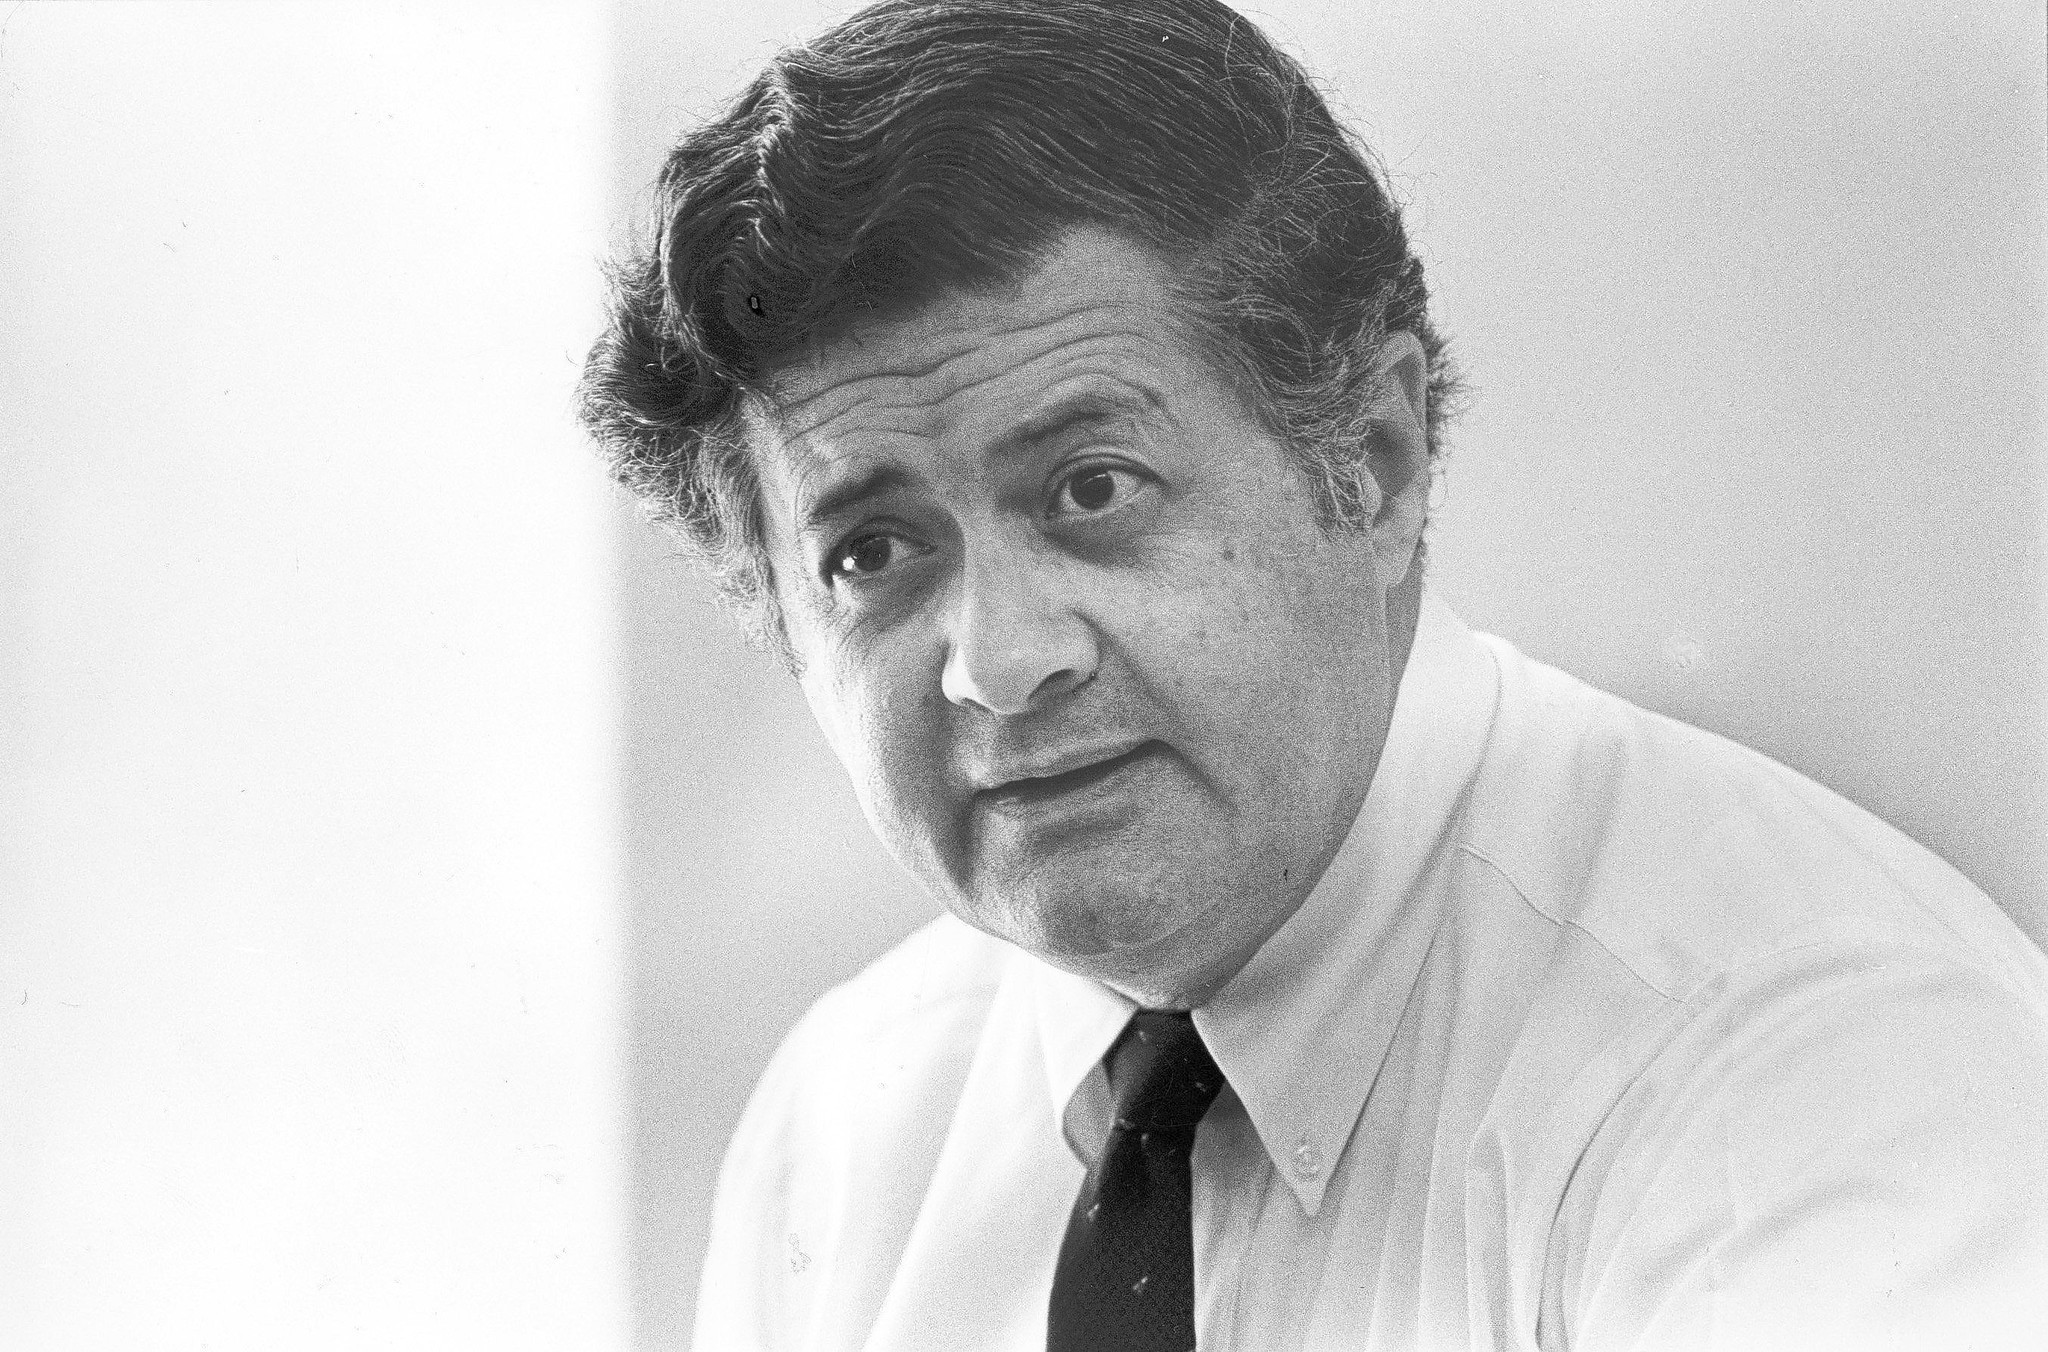 Robert L. Brosio, who led the criminal division of the U.S. attorney's office in Los Angeles for 28 years, died Friday.